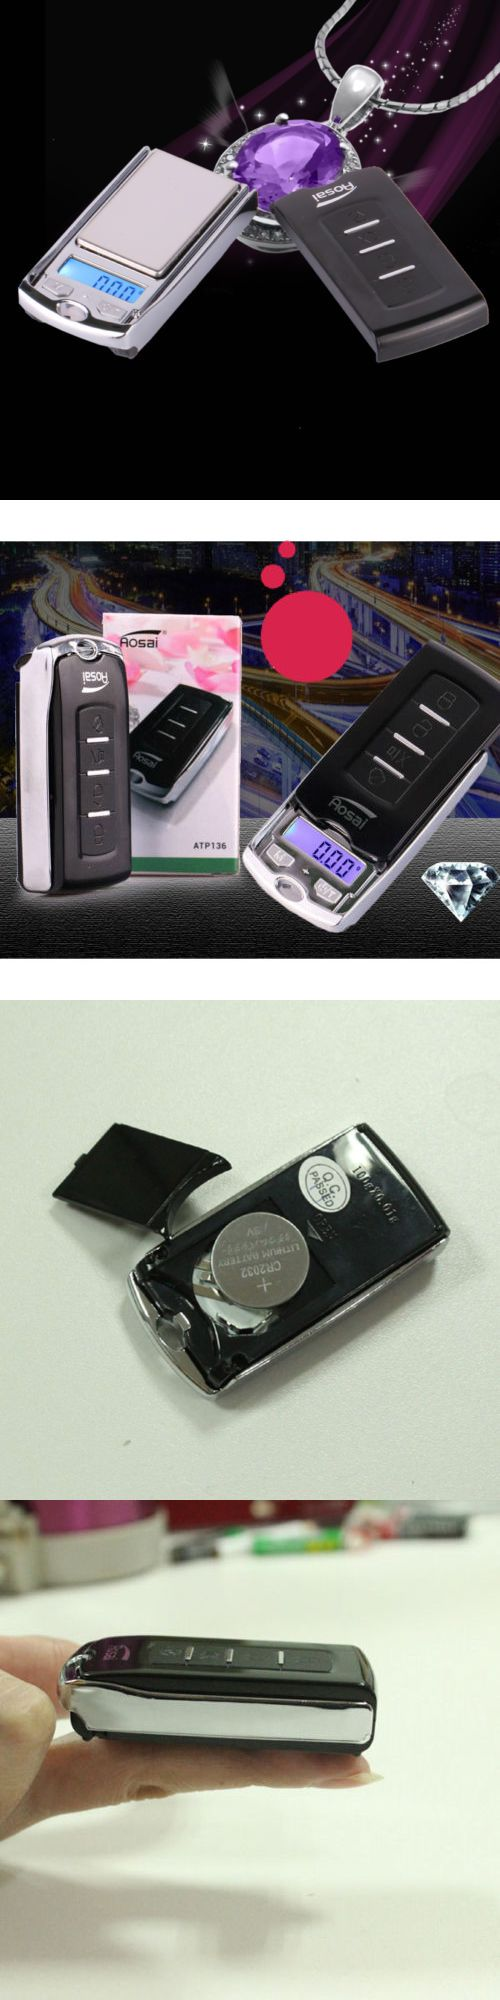 Scales 34088: Lot5 Car Key Mini Digital Pocket Scale Jewelry Weight Electronic Scale 100G 0.01 -> BUY IT NOW ONLY: $31.95 on eBay!